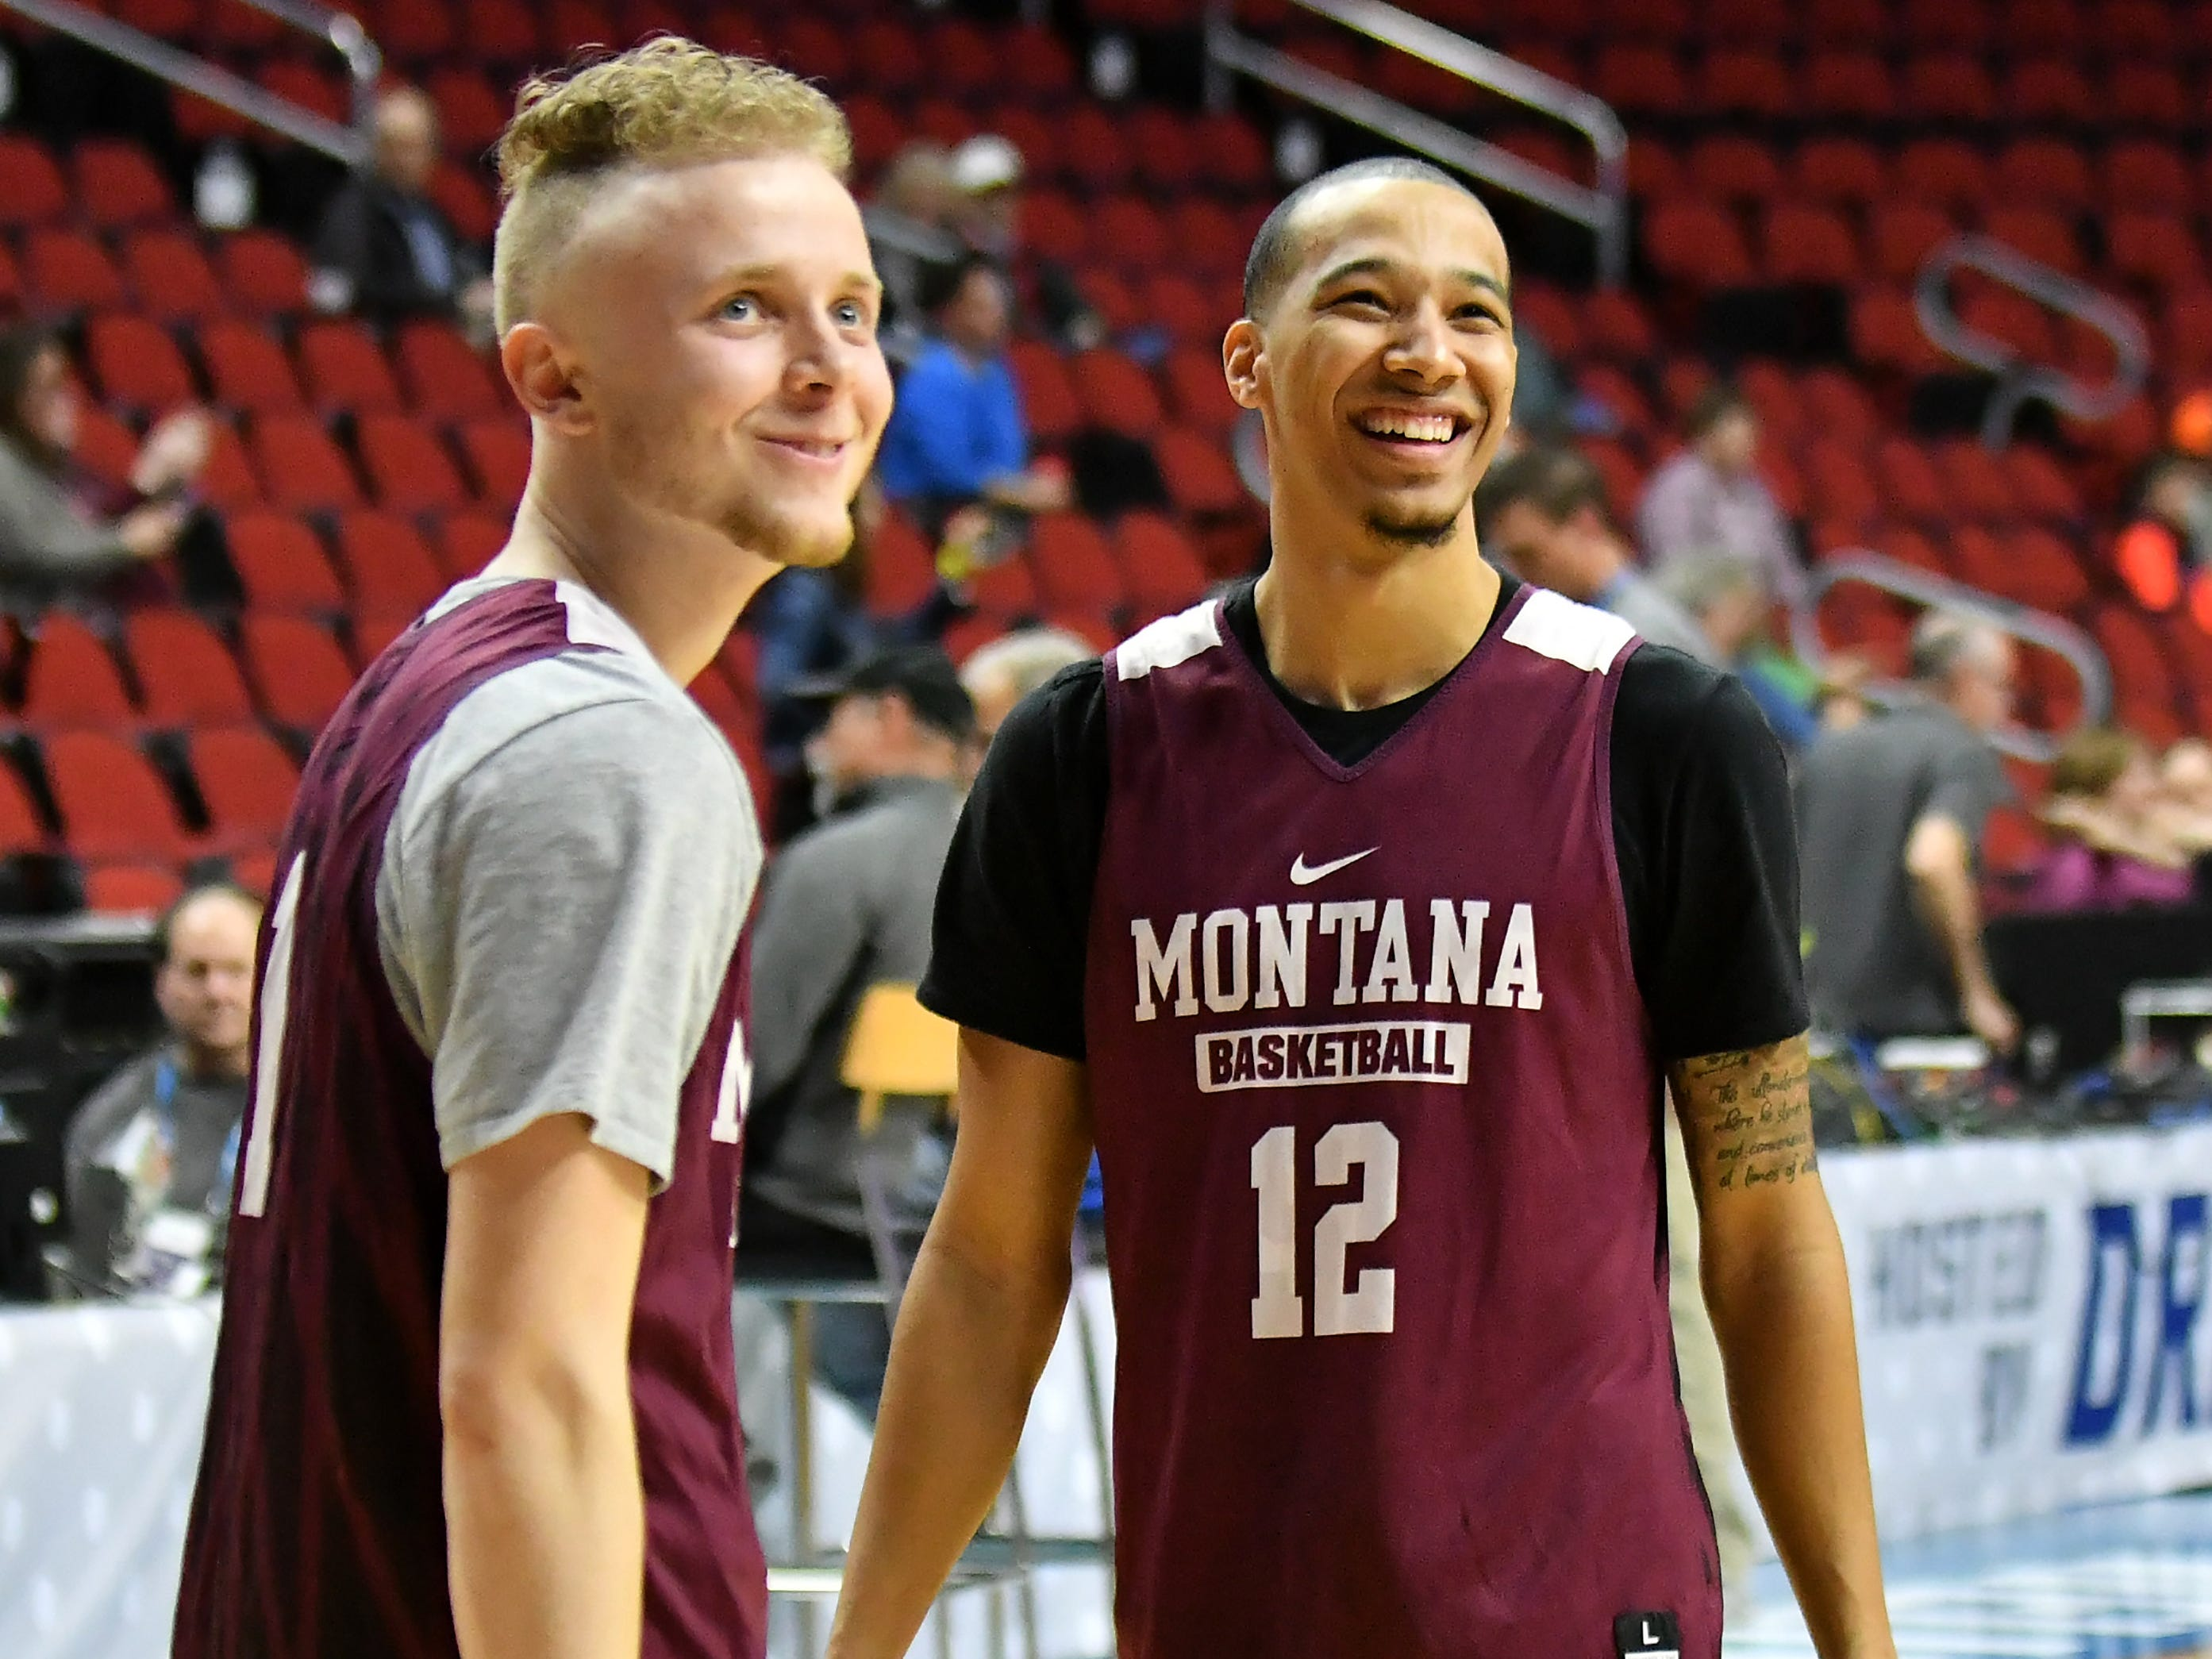 Montana guard Timmy Falls smiles with teammate Kendal Manuel (12) at practice.